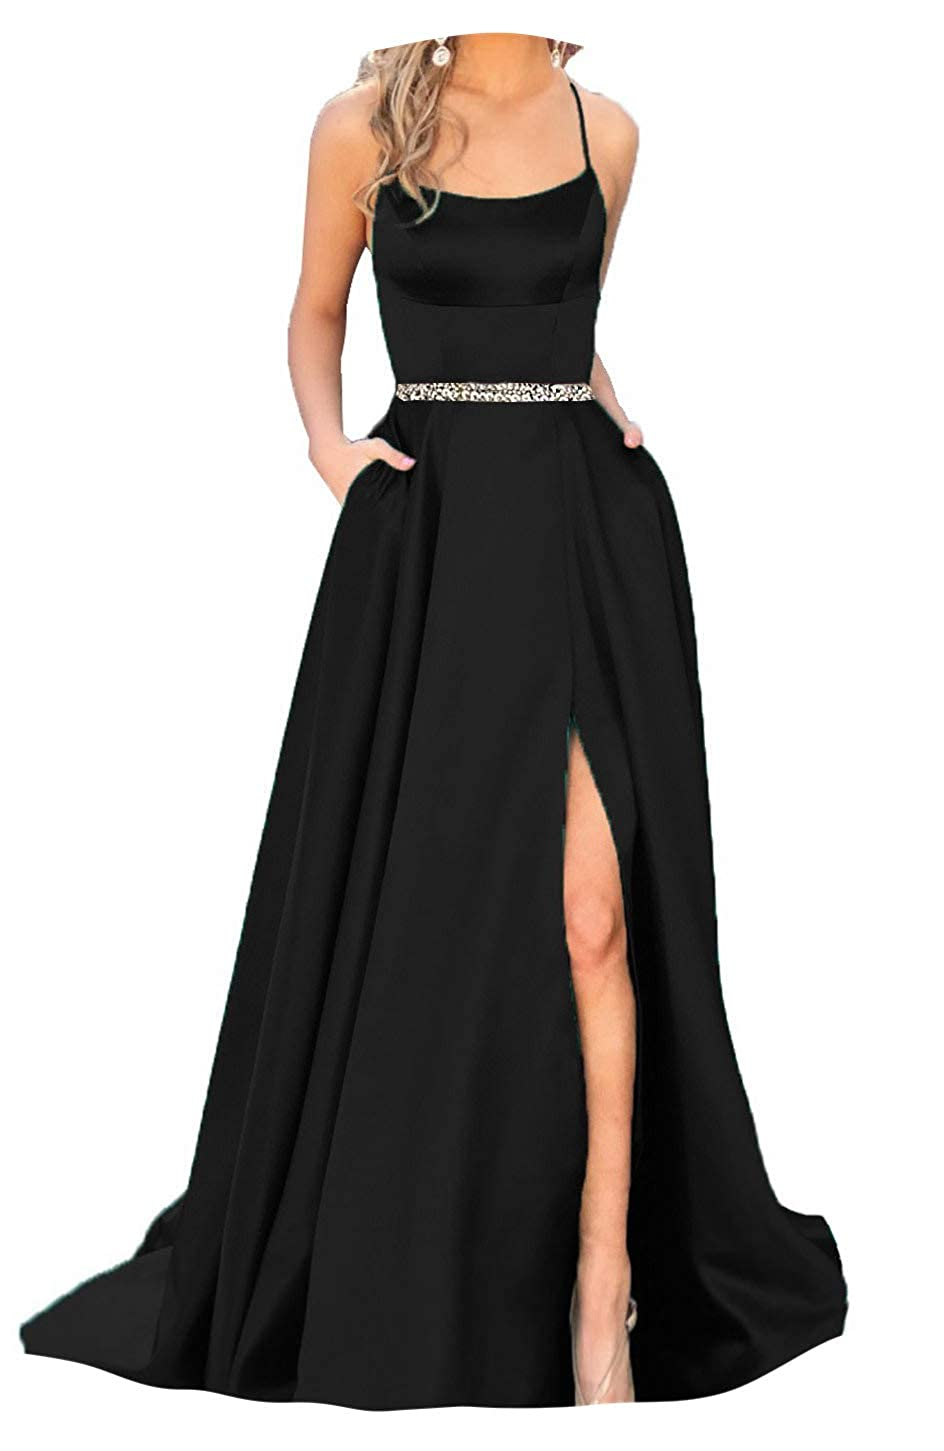 Black With Beaded Fanciest Women's Halter Slit Satin Prom Dresses Long Backless Evening Formal Gowns